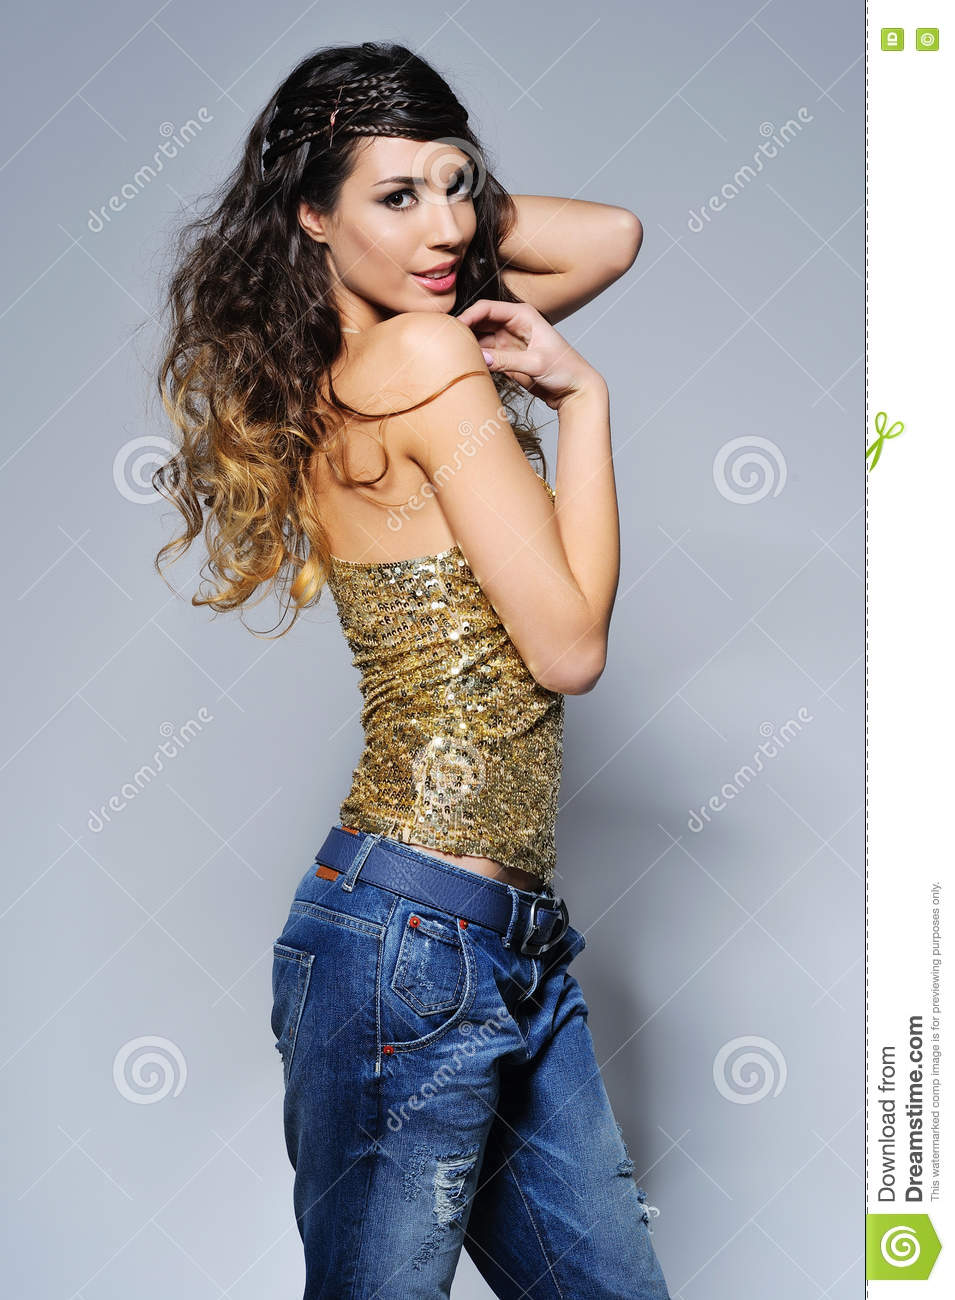 Beautiful Woman Party Portrait In Sparkling Top Stock Image Image